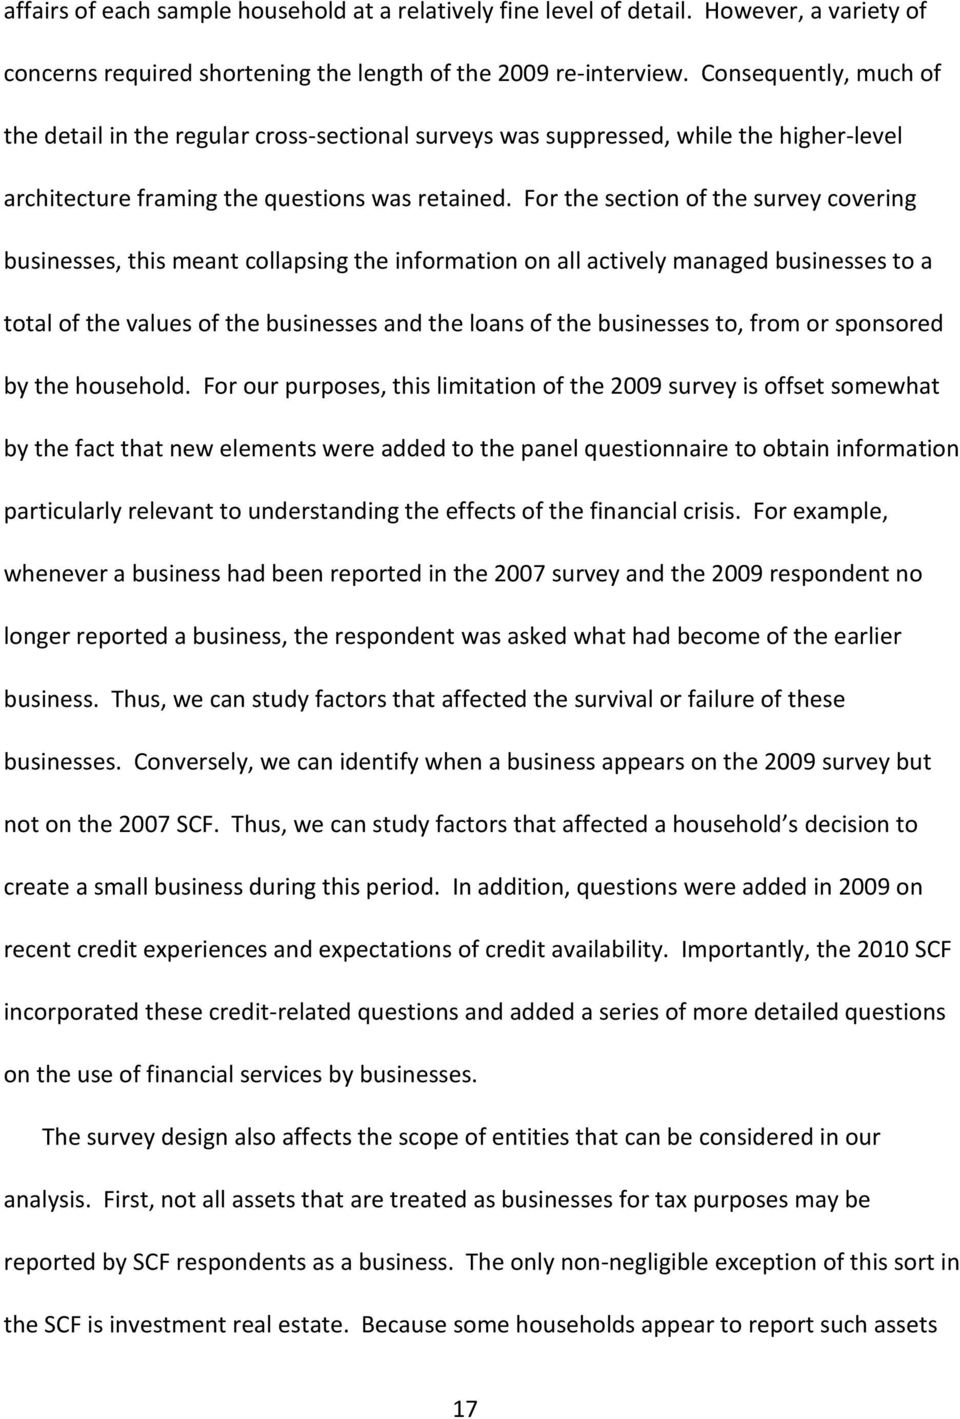 For the section of the survey covering businesses, this meant collapsing the information on all actively managed businesses to a total of the values of the businesses and the loans of the businesses